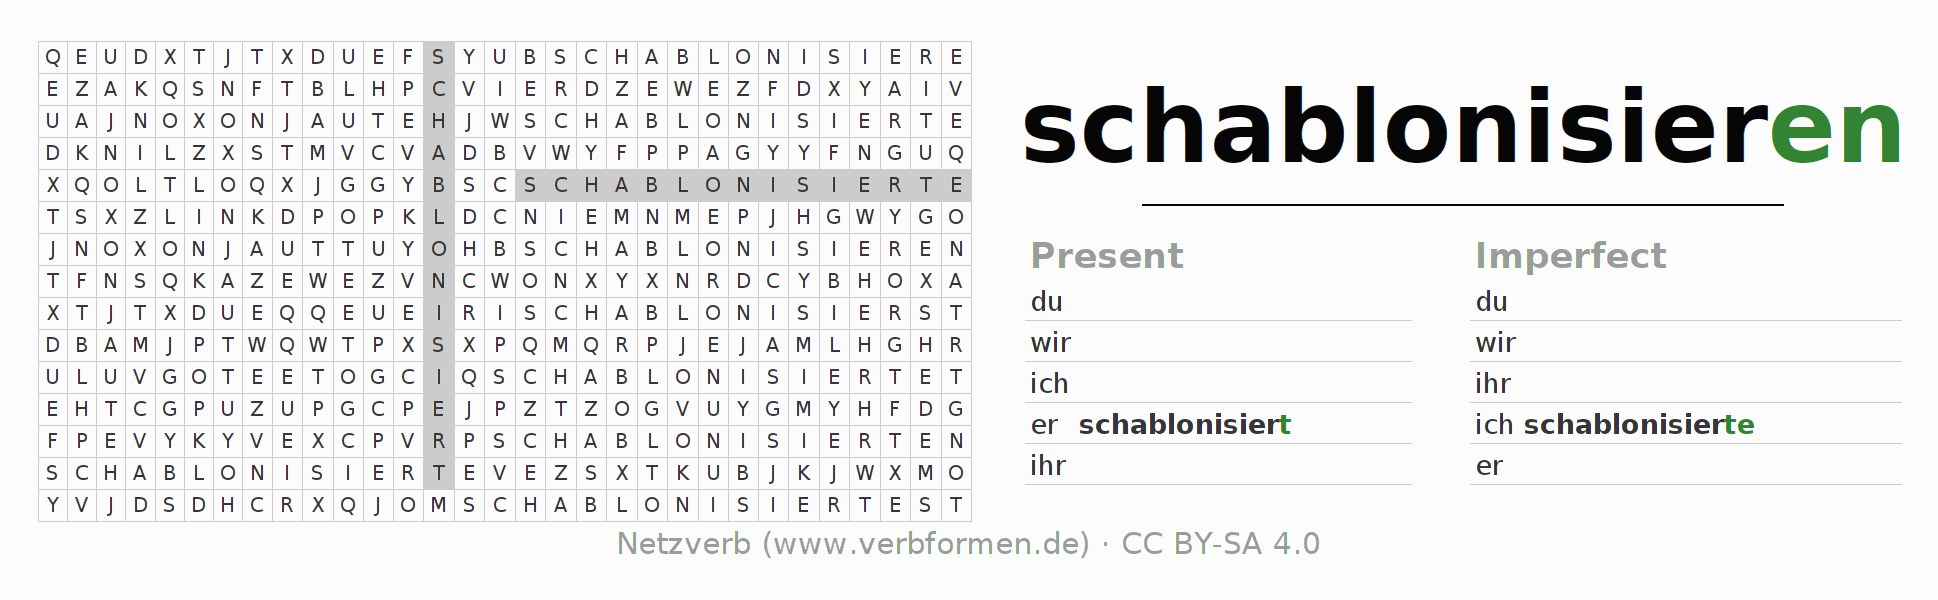 Word search puzzle for the conjugation of the verb schablonisieren